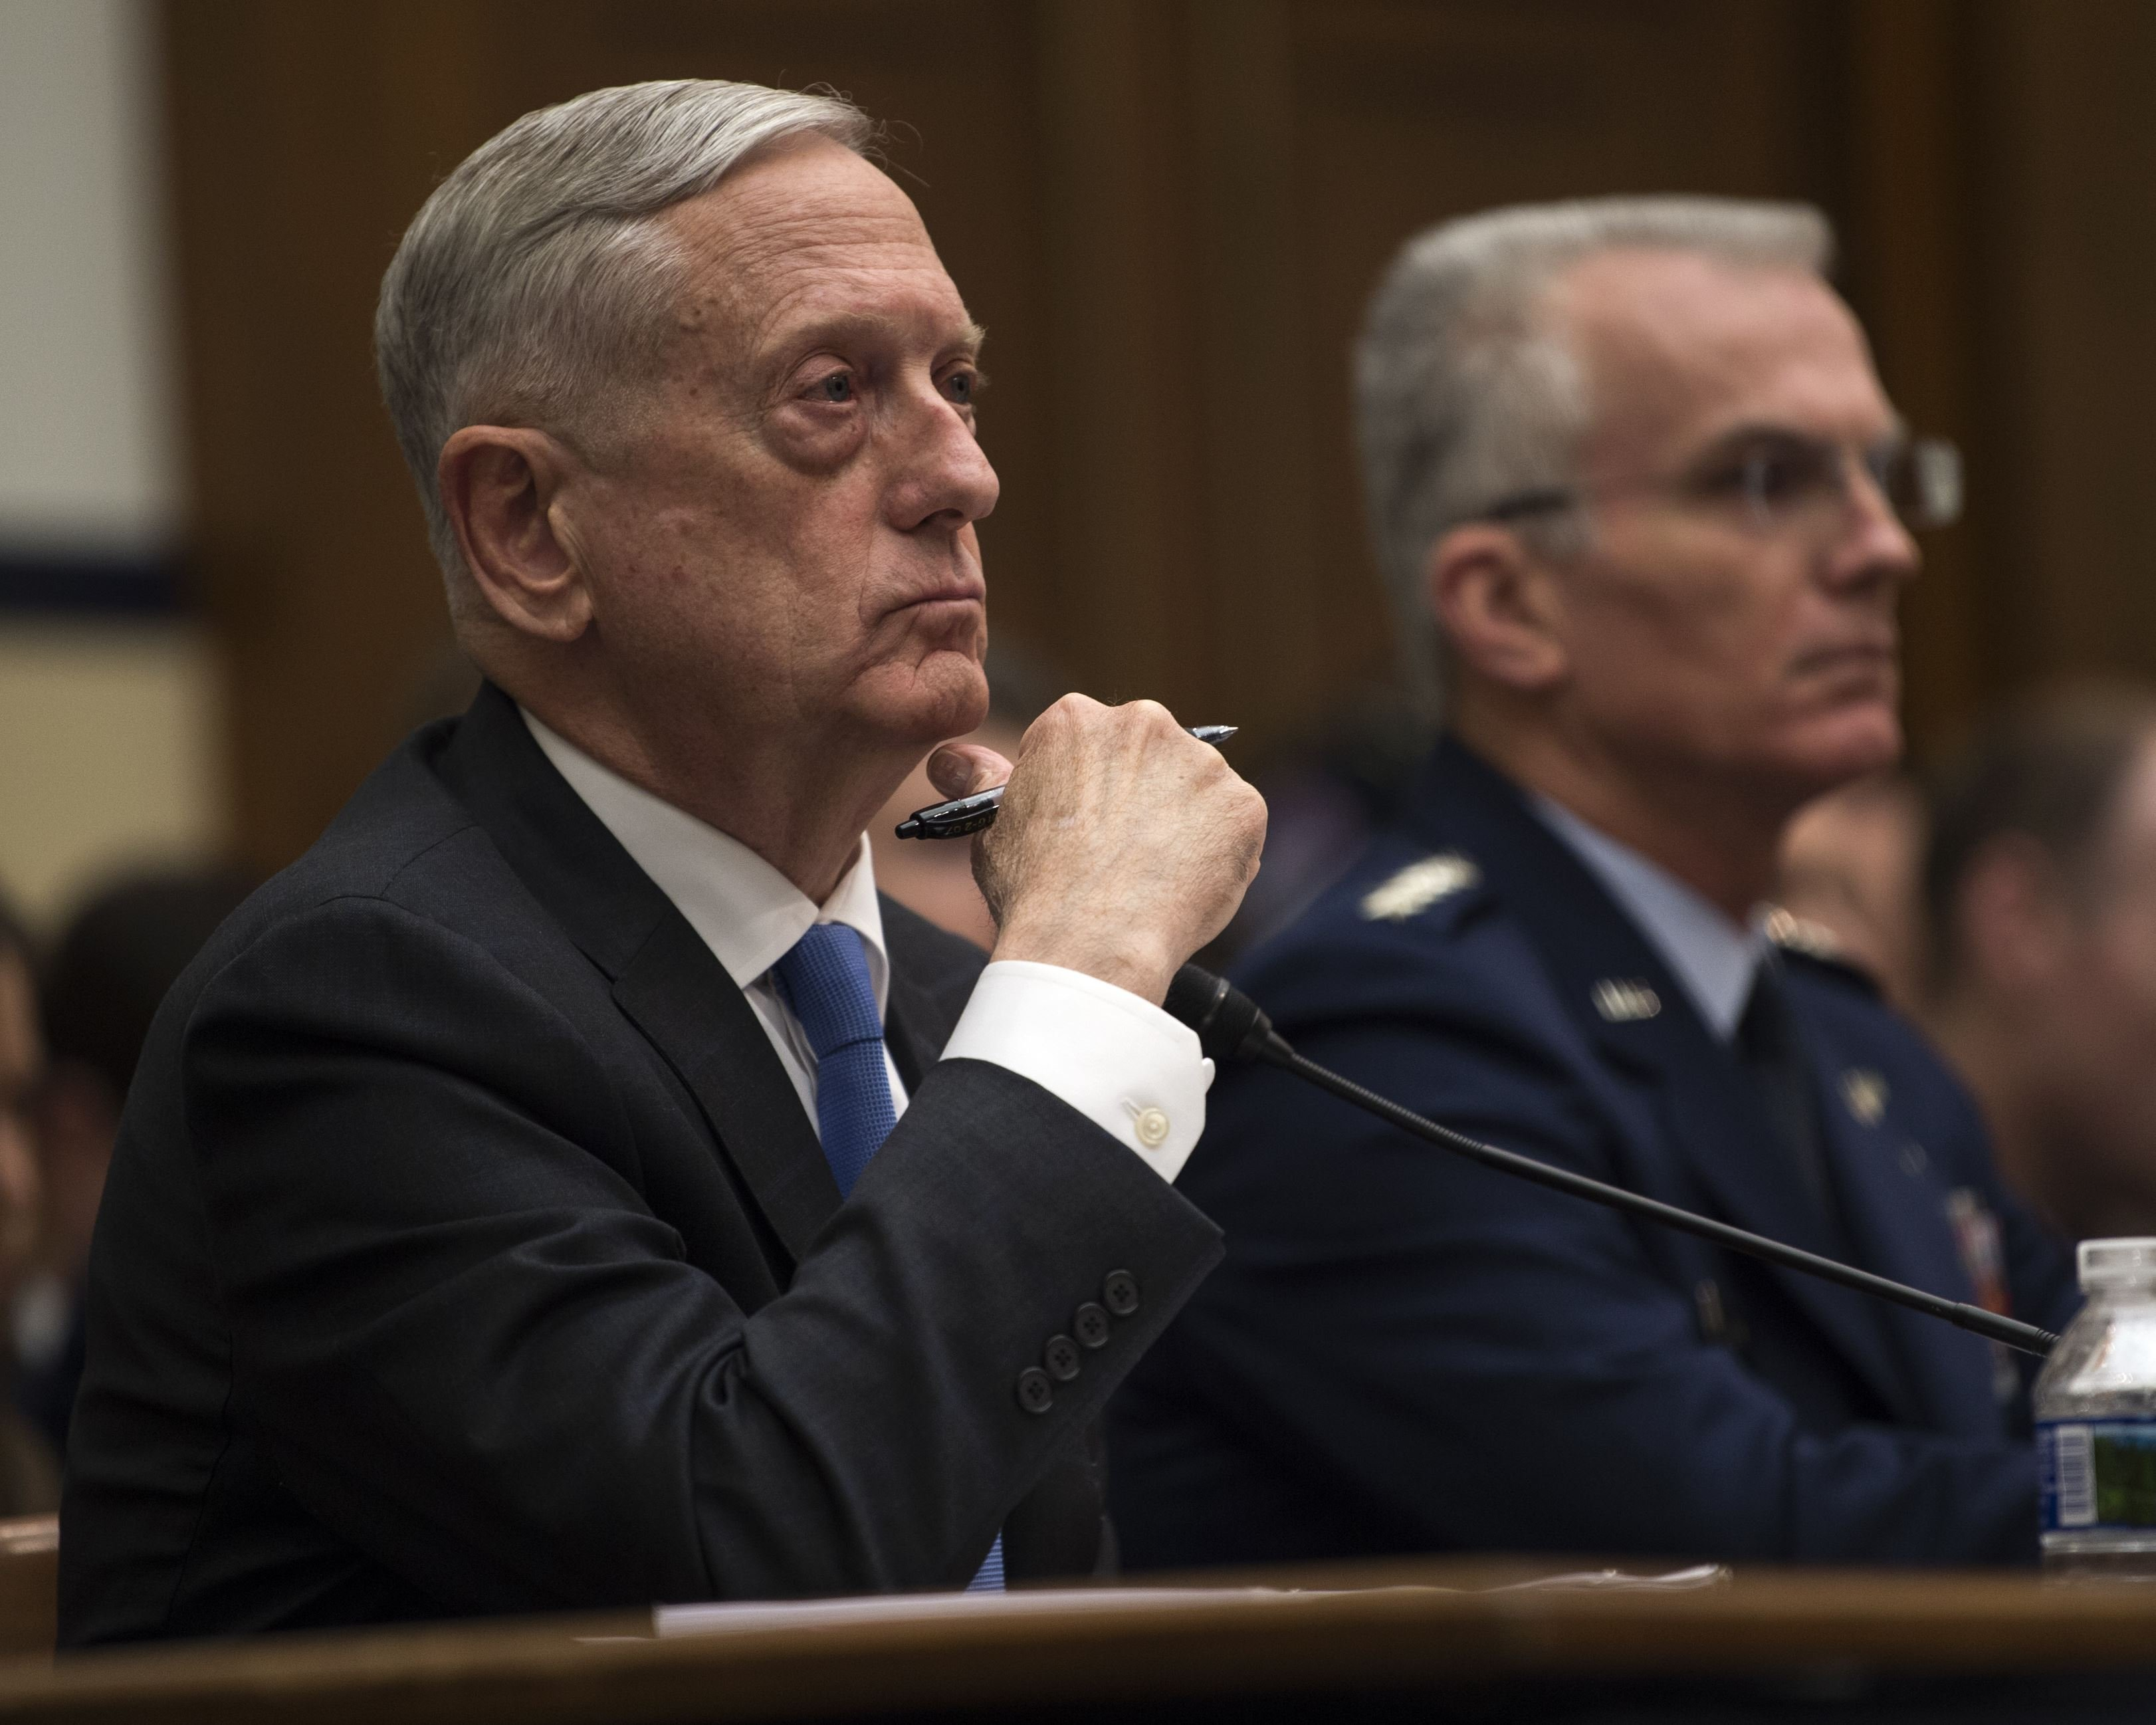 US Needs to Improve Communication with Russia, China - Mattis